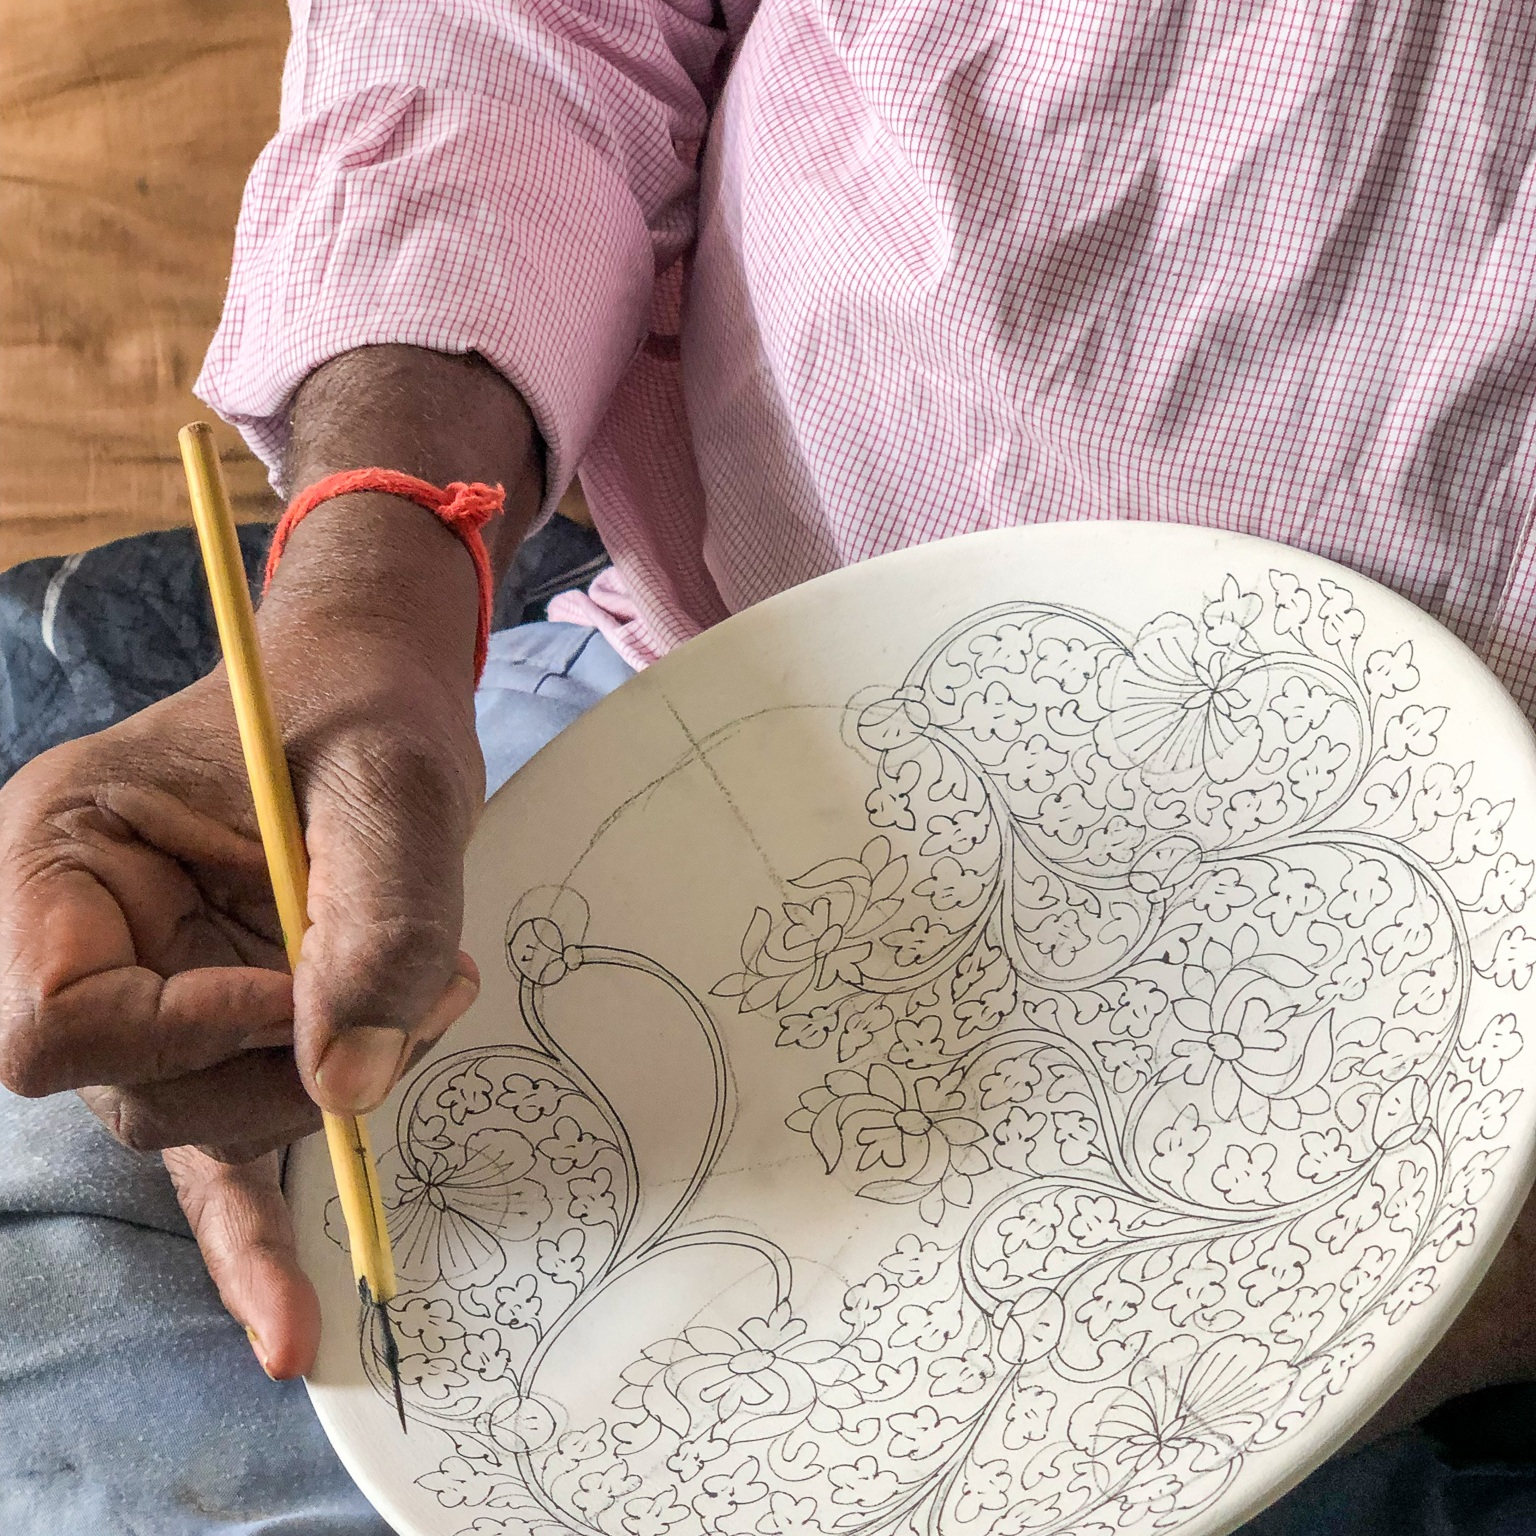 blue_pottery_hand_drawing